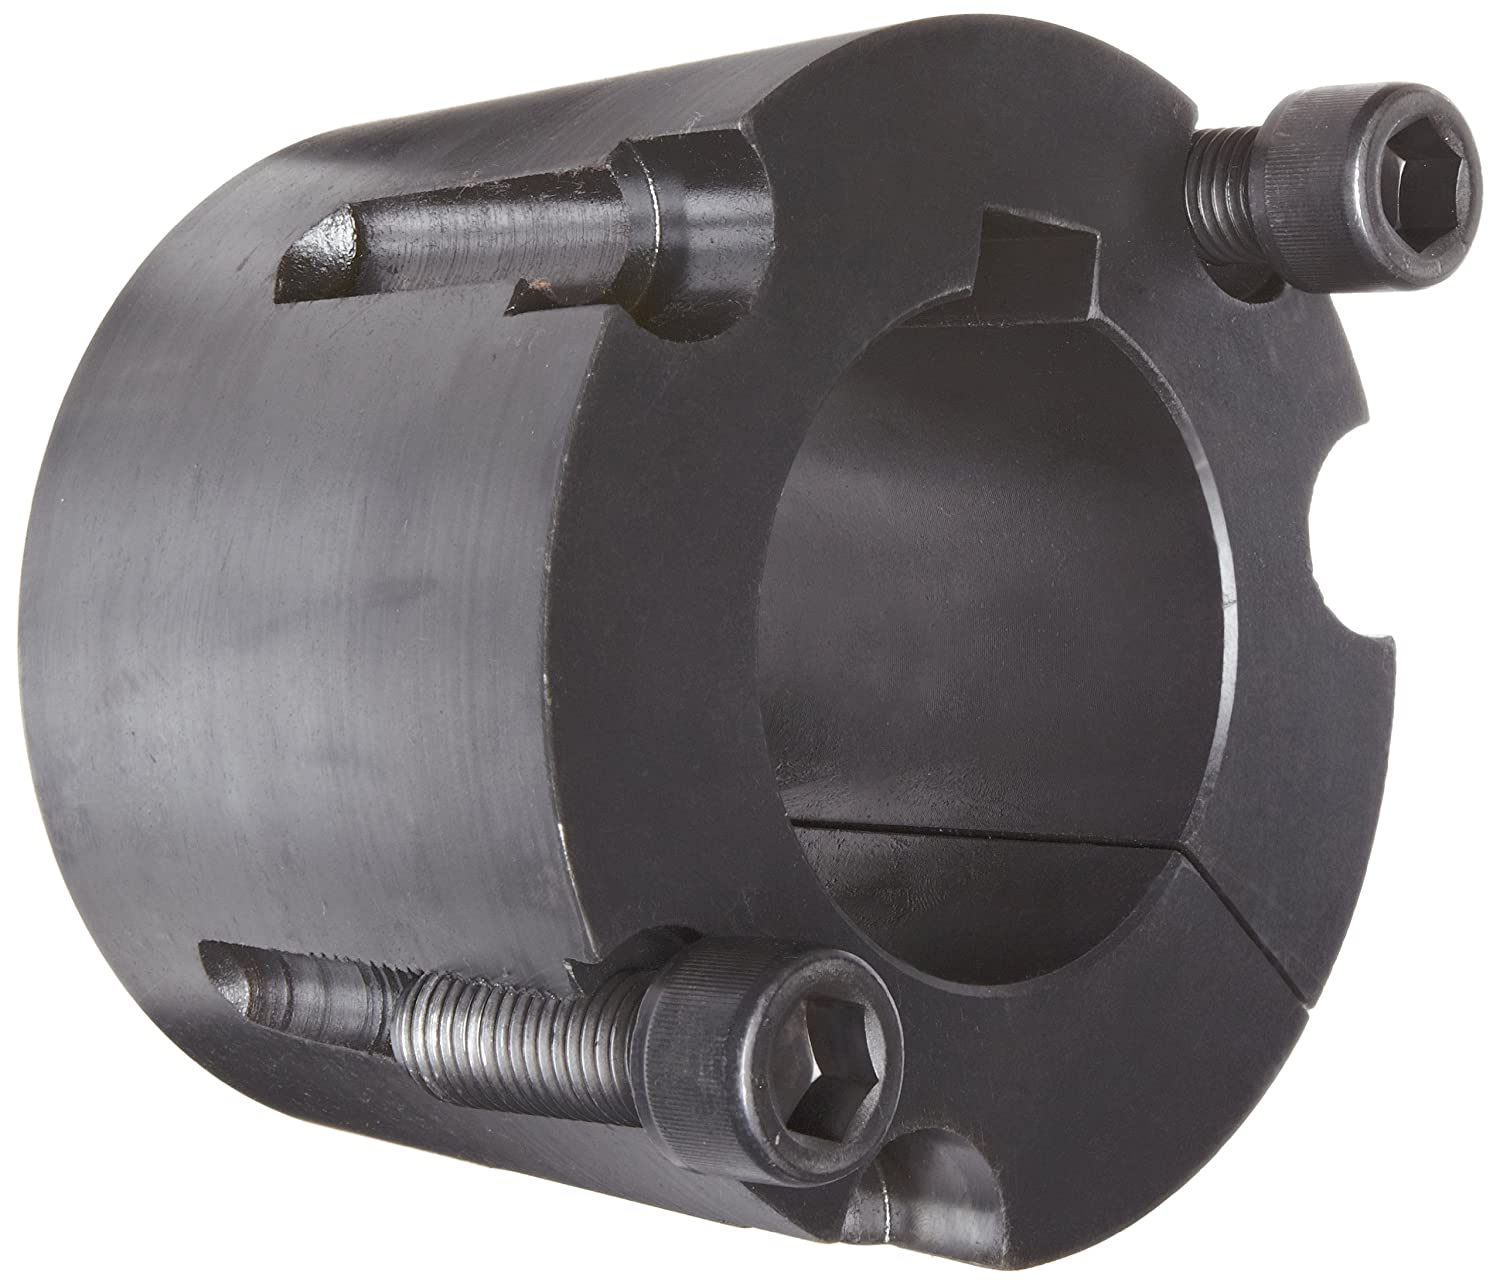 Martin 4545 3 4 Taper Bushing Iron 30 Inch Cast Class Gray Discount mail Our shop most popular order